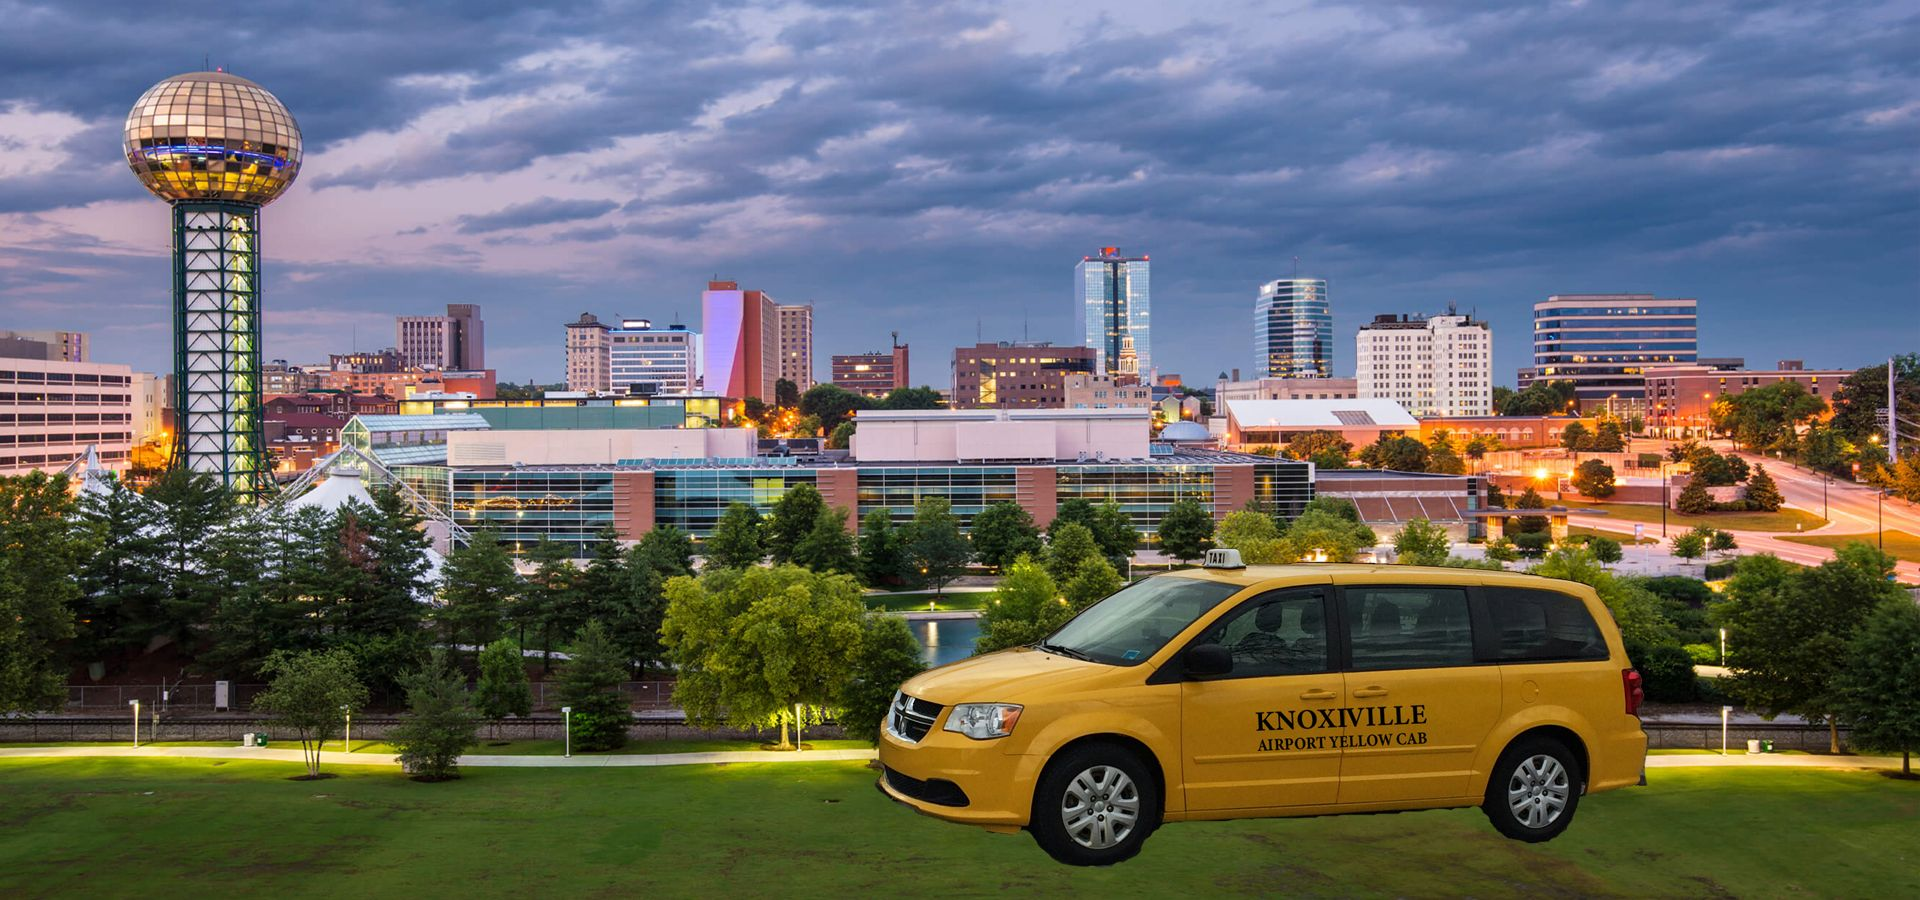 Airport Taxi Jefferson City 24x7 Airport Shuttle Service Jefferson City We Offer A Flat Rate On Airport Taxi Jefferson City Taxi Service Lenoir City